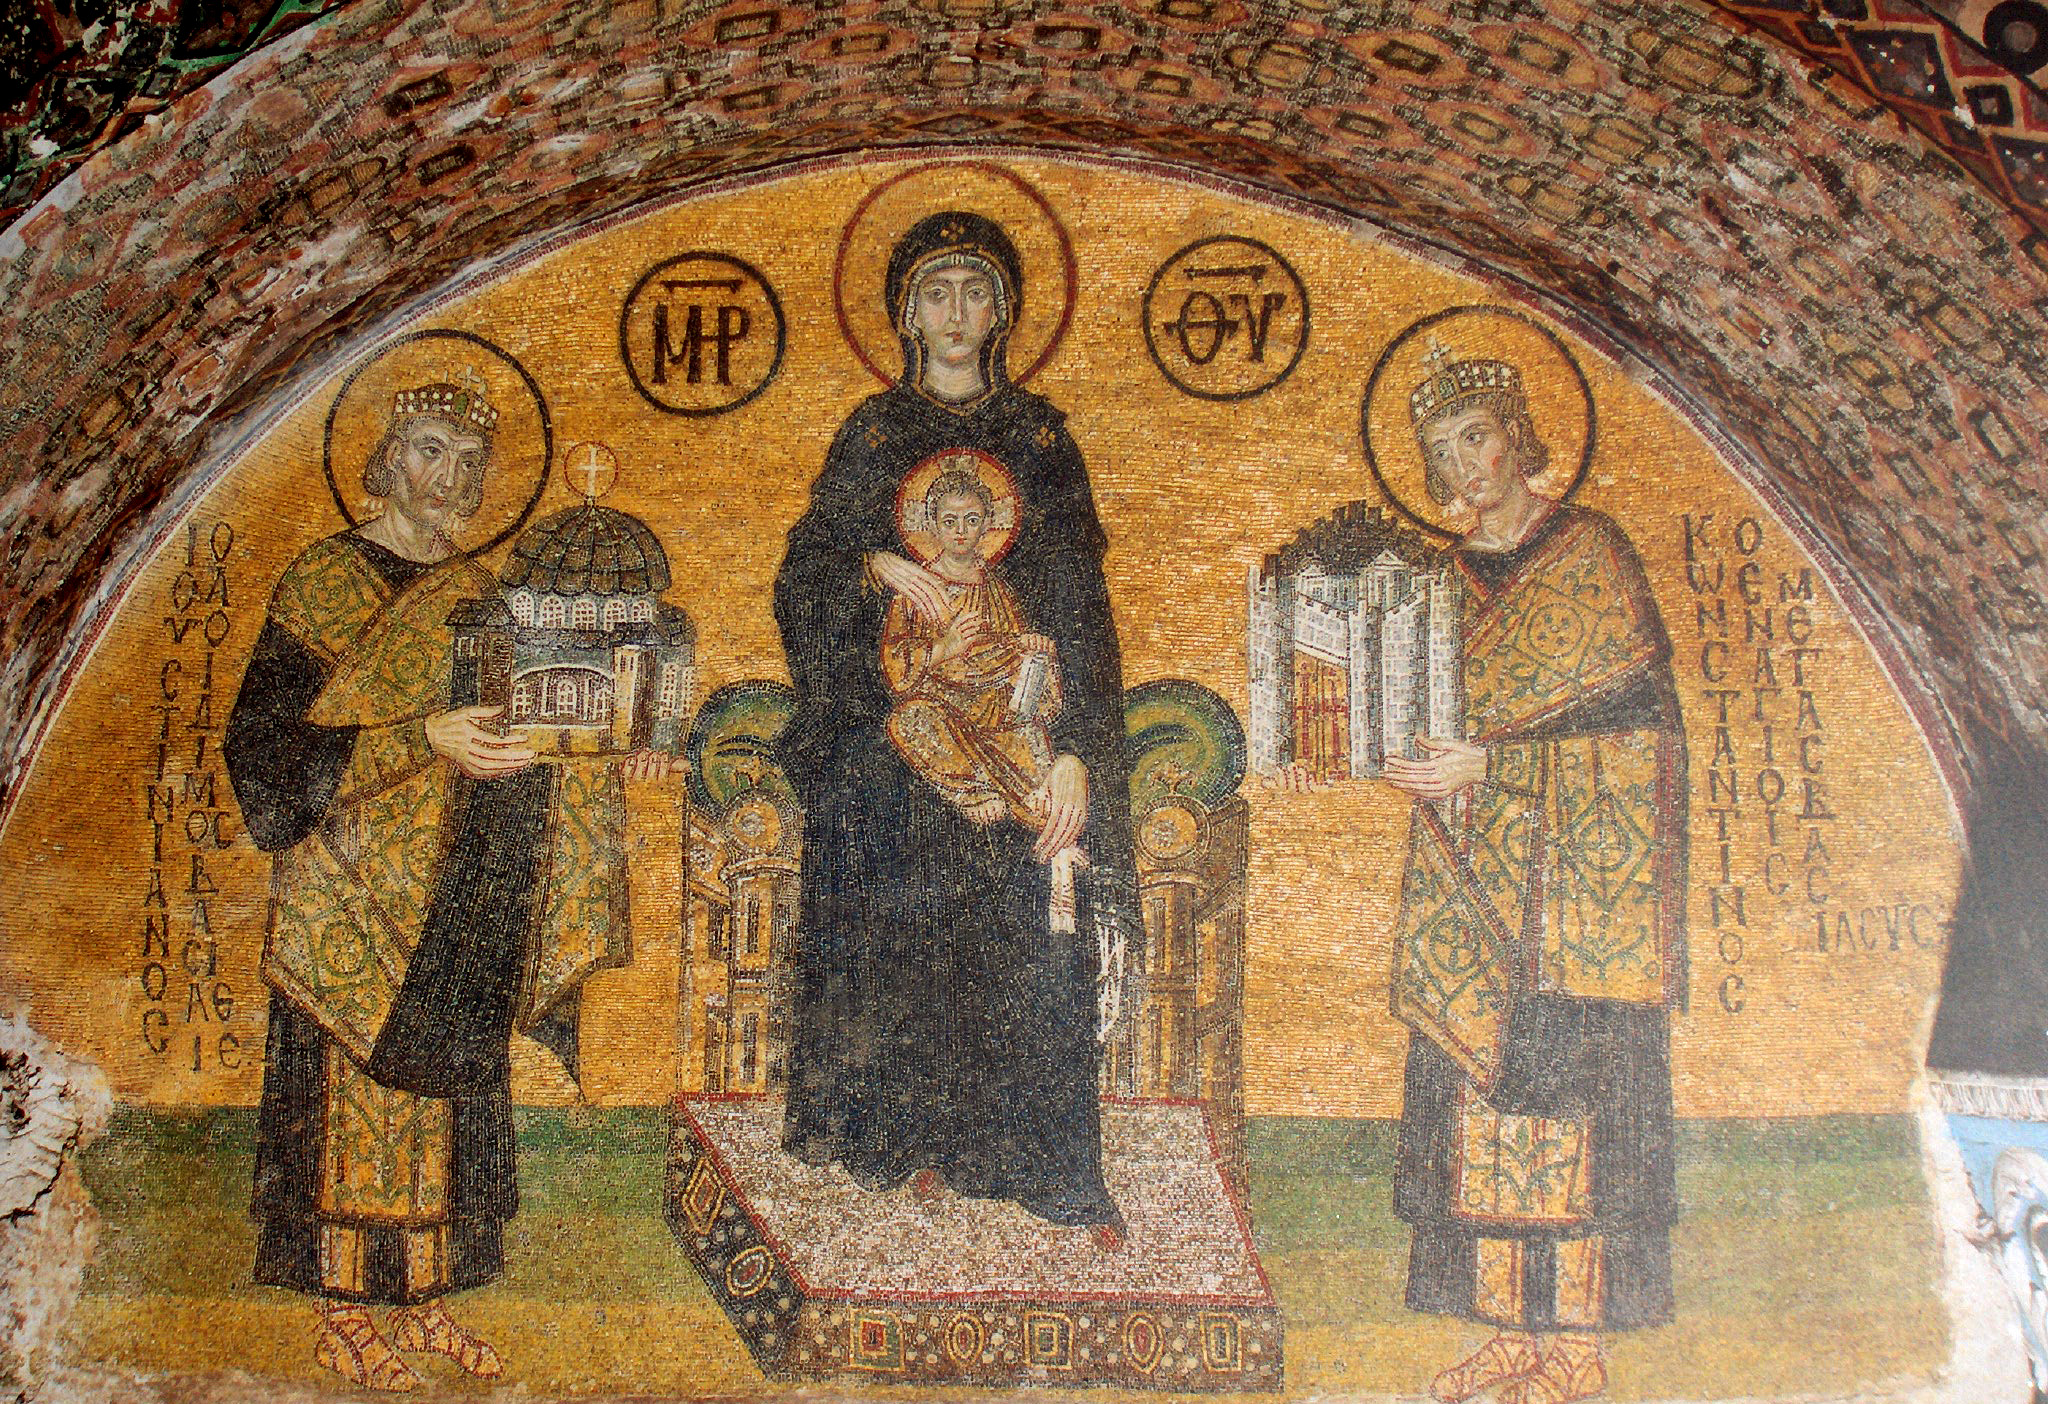 Theotokos and Christ flanked by Justinian I and Constantine I, from Hagia Sophia